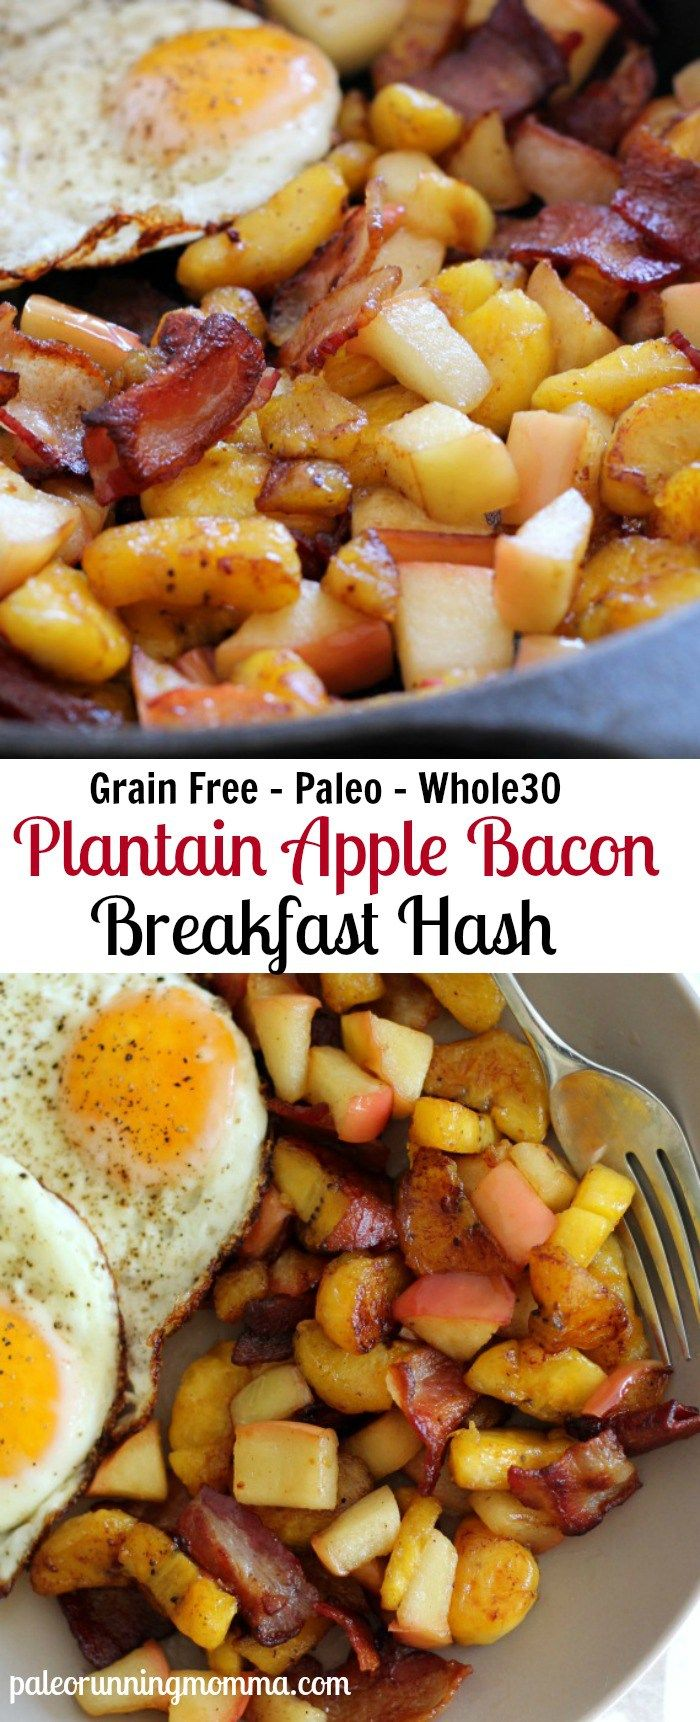 Sweet Plantain Apple Bacon Breakfast hash - whole30